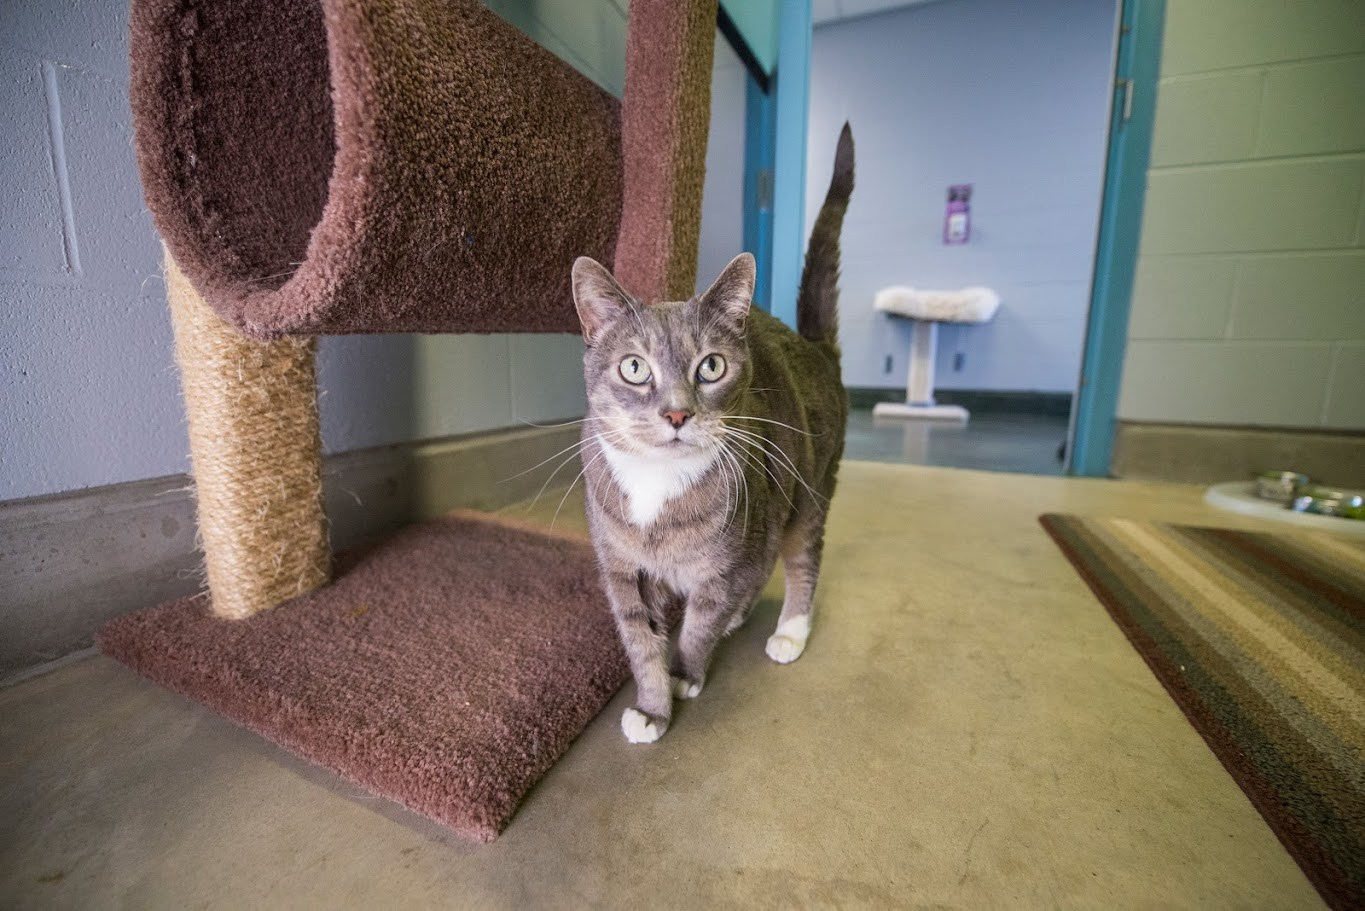 Adopt Me: Senior cat in shelter for 543 days and counting (VIDEOS)